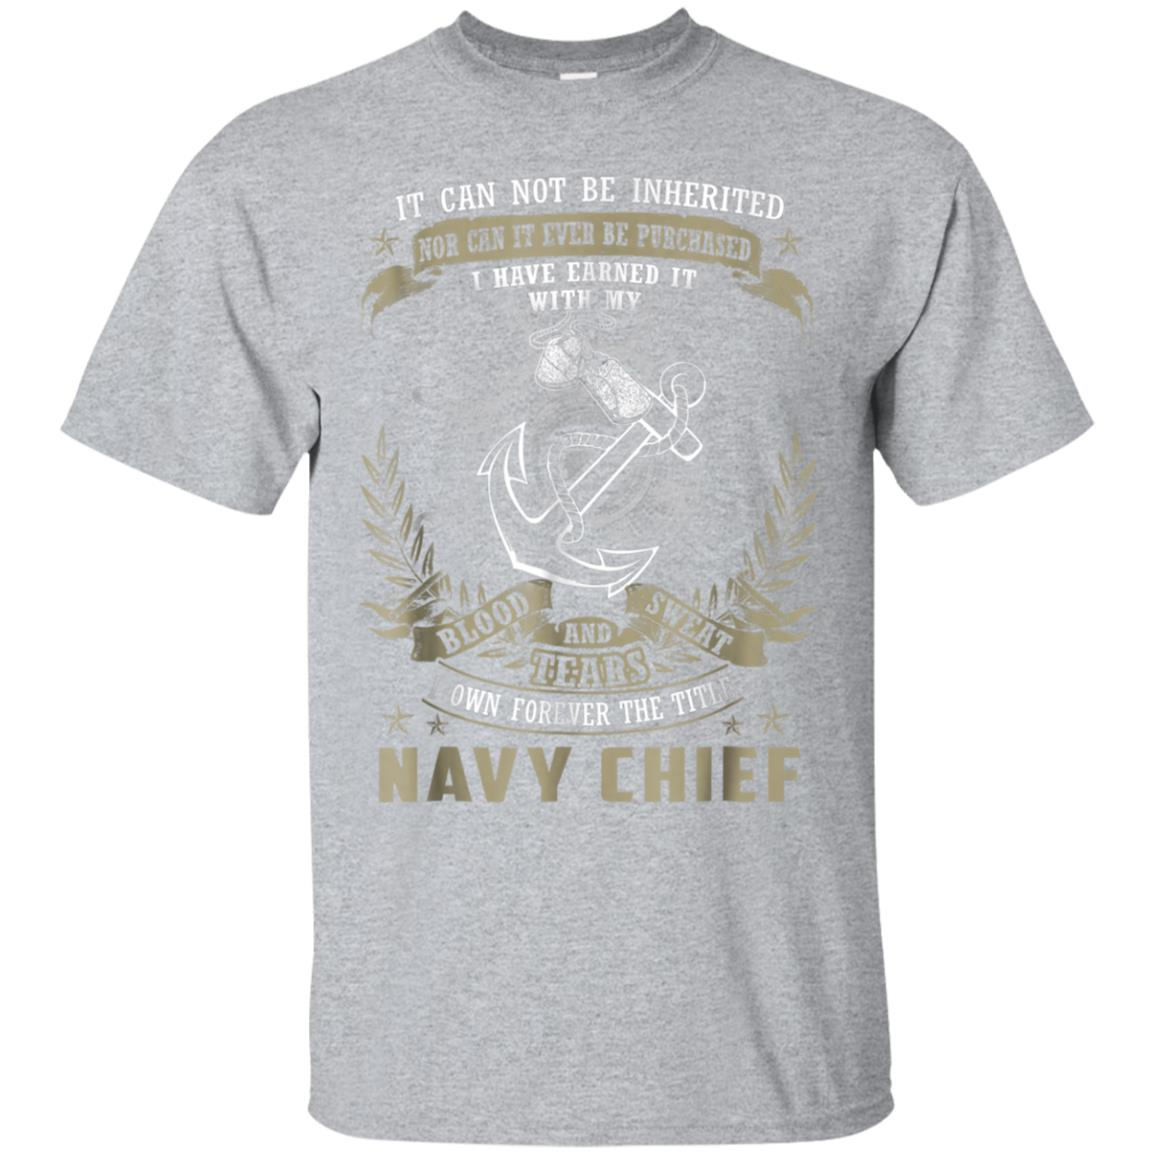 Mens Navy Chief, It Can Not Be Inherited Or Purchased T-shirt 99promocode